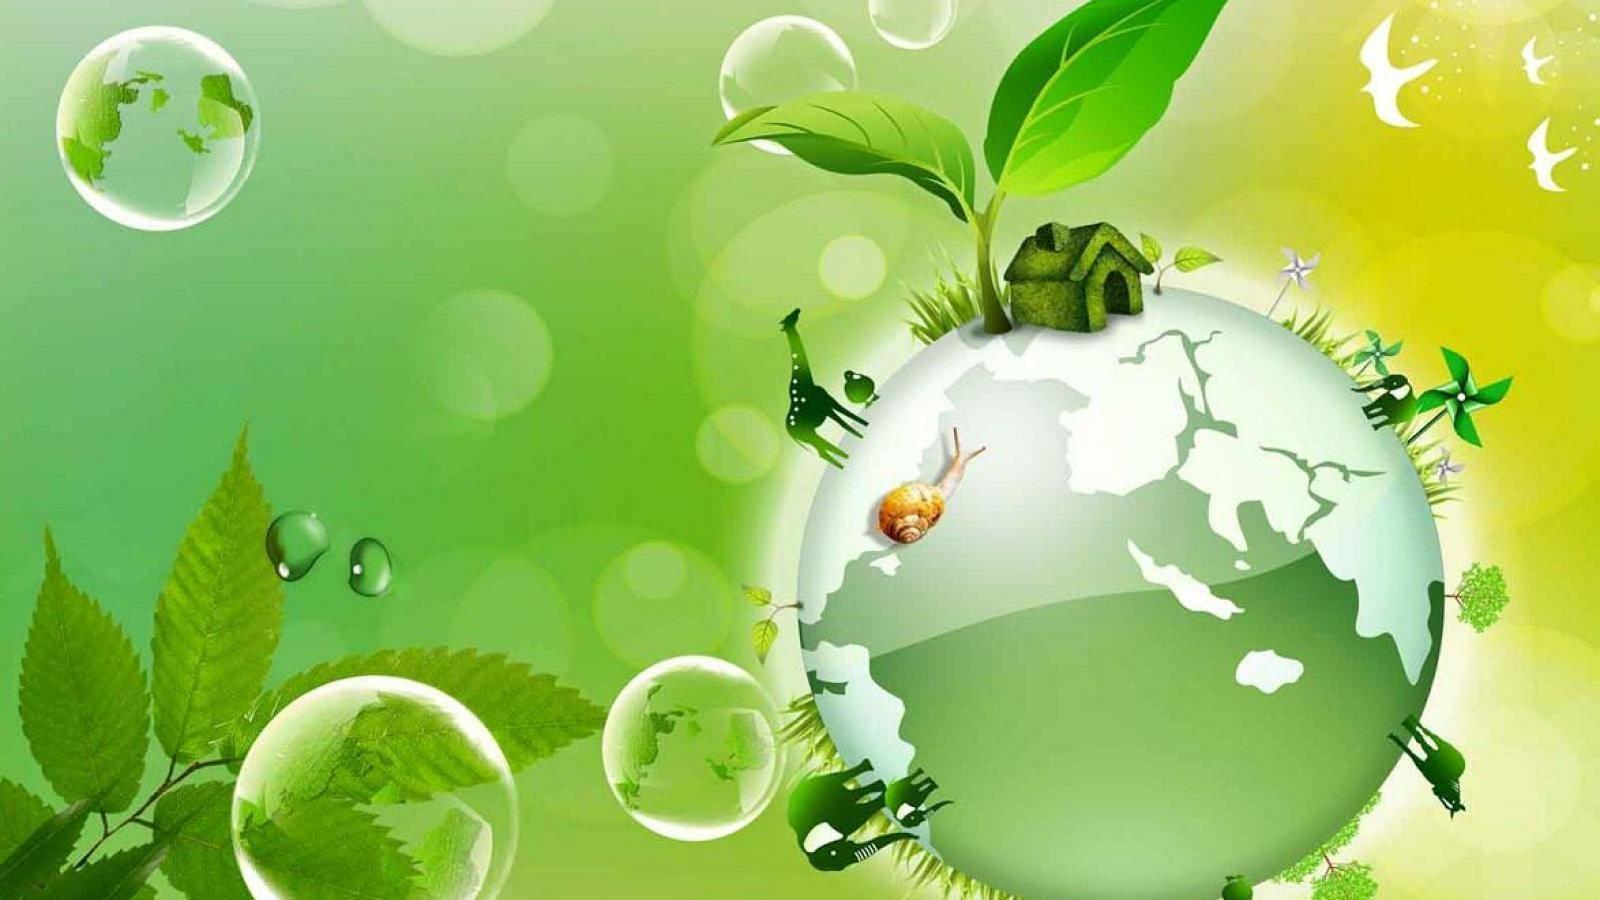 Earth Day Wallpapers Latest HD Pictures Image and Wallpapers